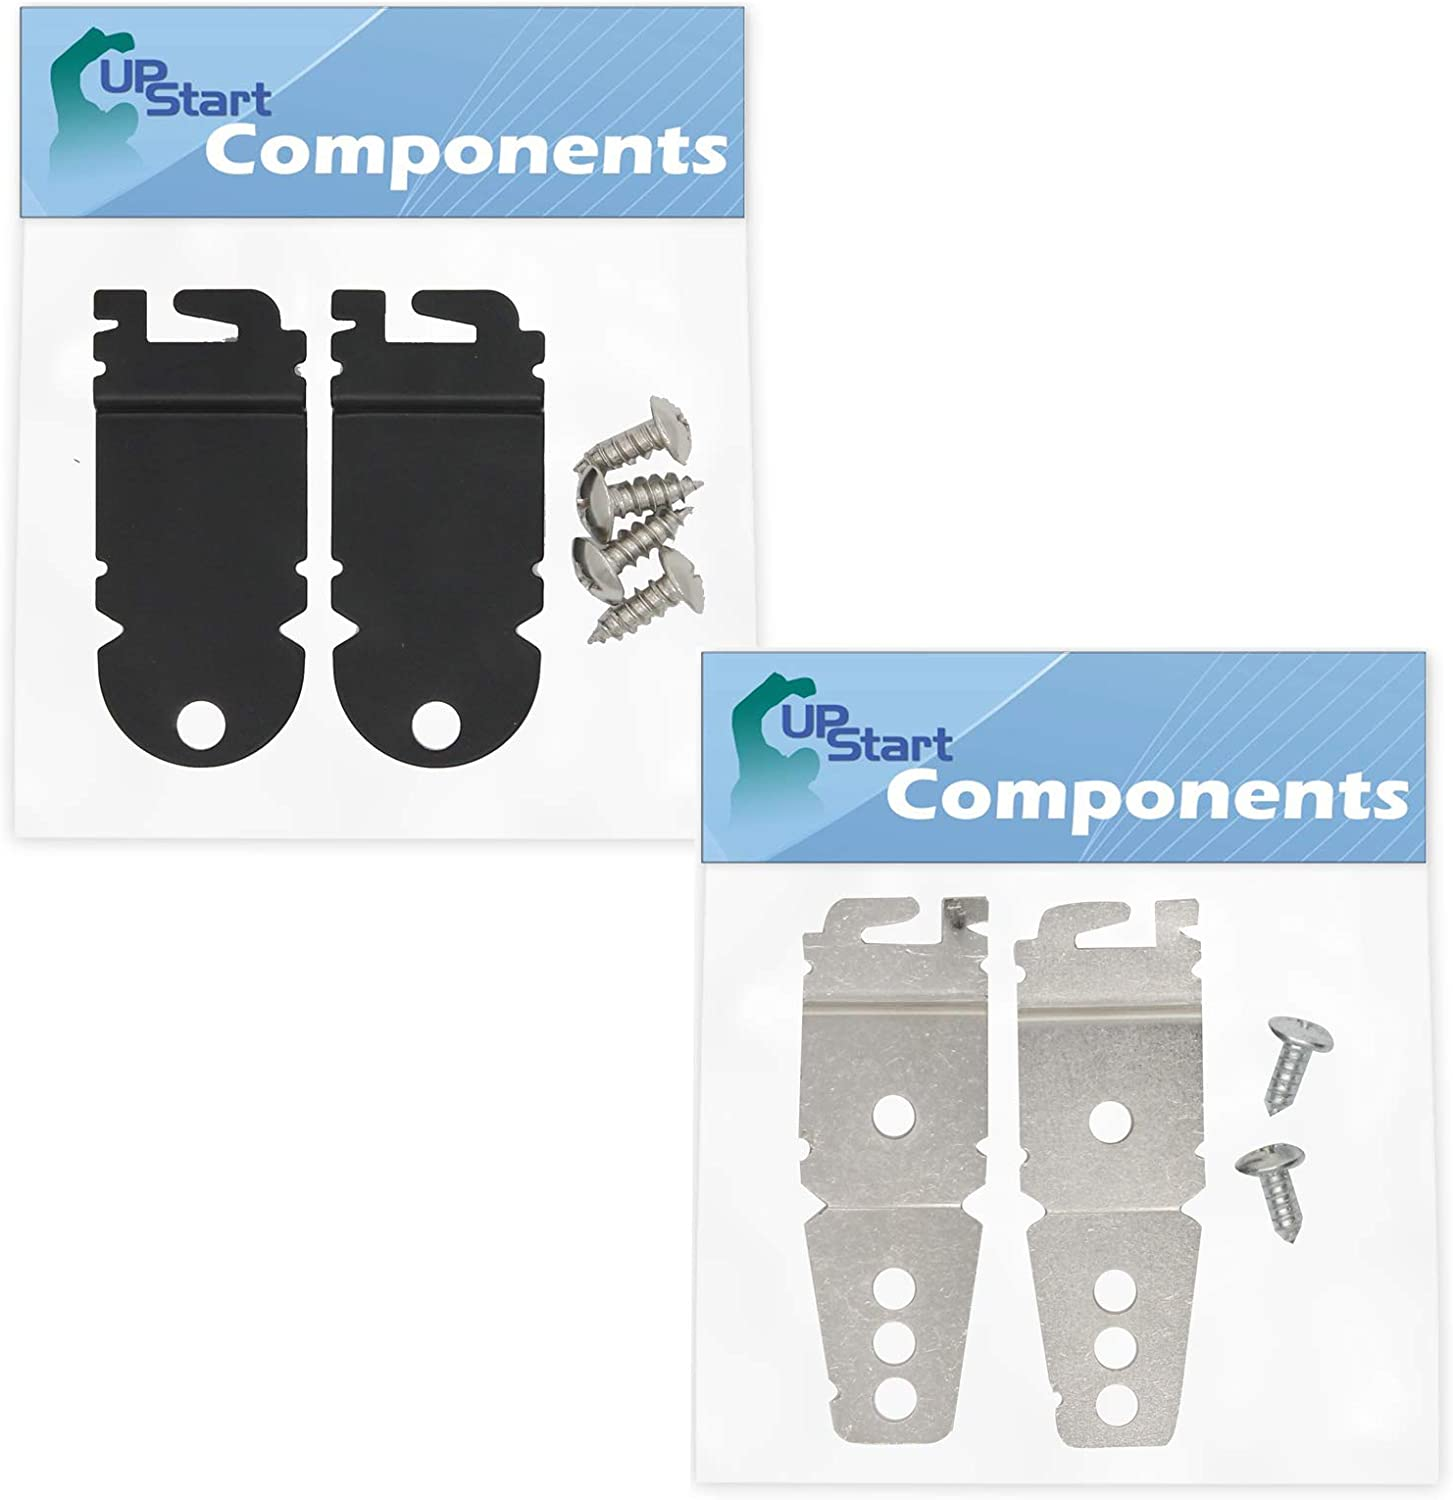 8212560 & 8269145 Mounting Bracket Replacement Kit With Screw Replacement for KitchenAid KDTE204EWH1 Dishwasher - Compatible with WP8269145 & 8212560 Undercounter Dishwasher Mounting Bracket